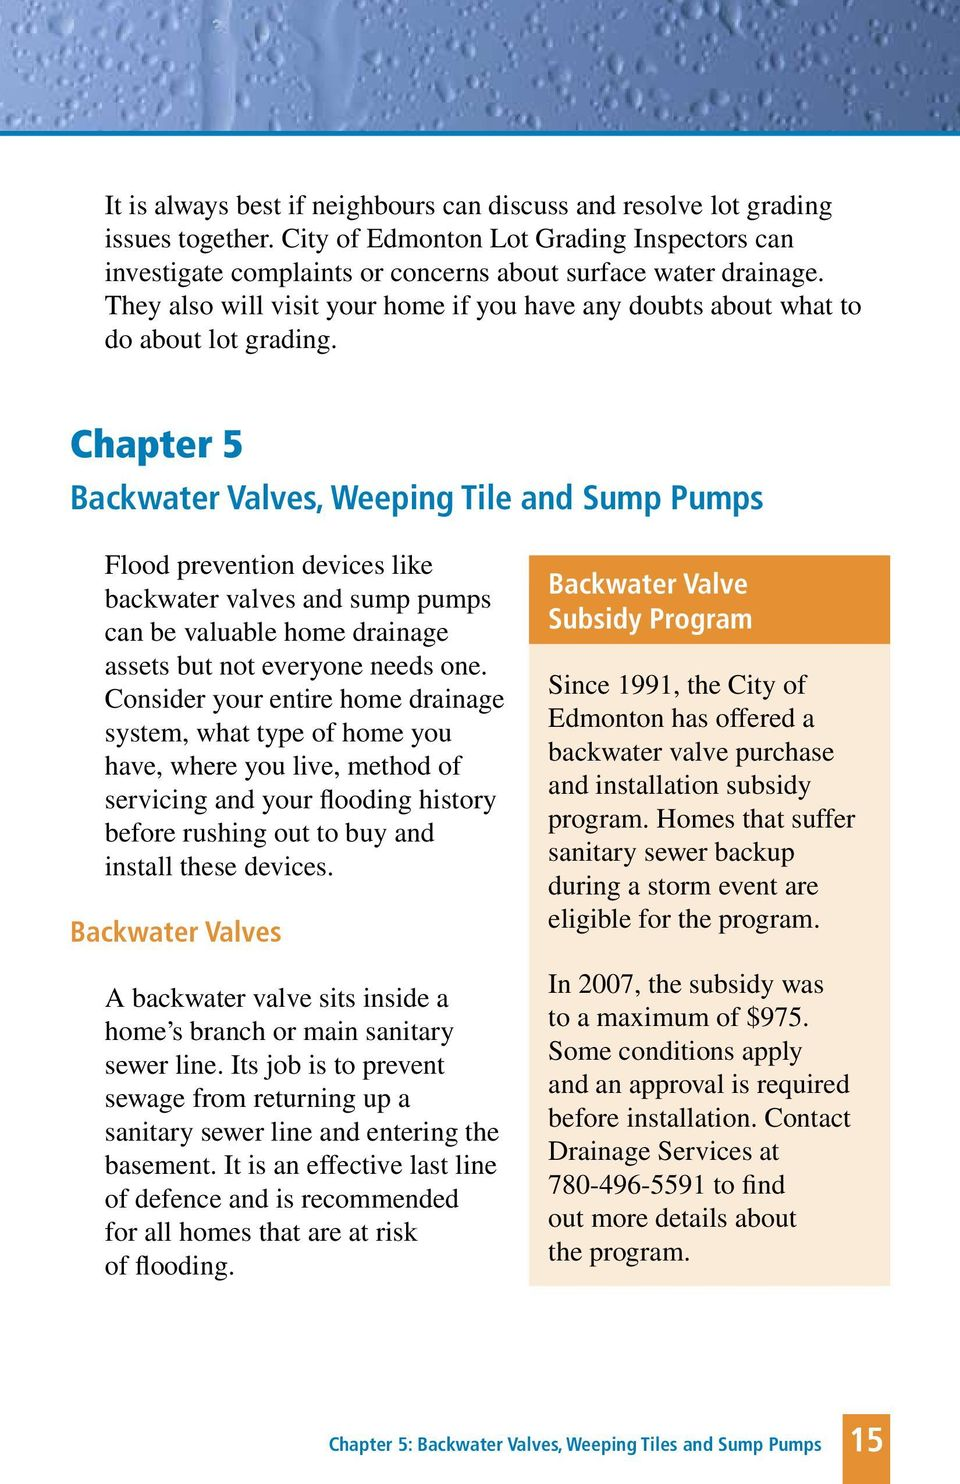 Chapter 5 Backwater Valves, Weeping Tile and Sump Pumps Flood prevention devices like backwater valves and sump pumps can be valuable home drainage assets but not everyone needs one.